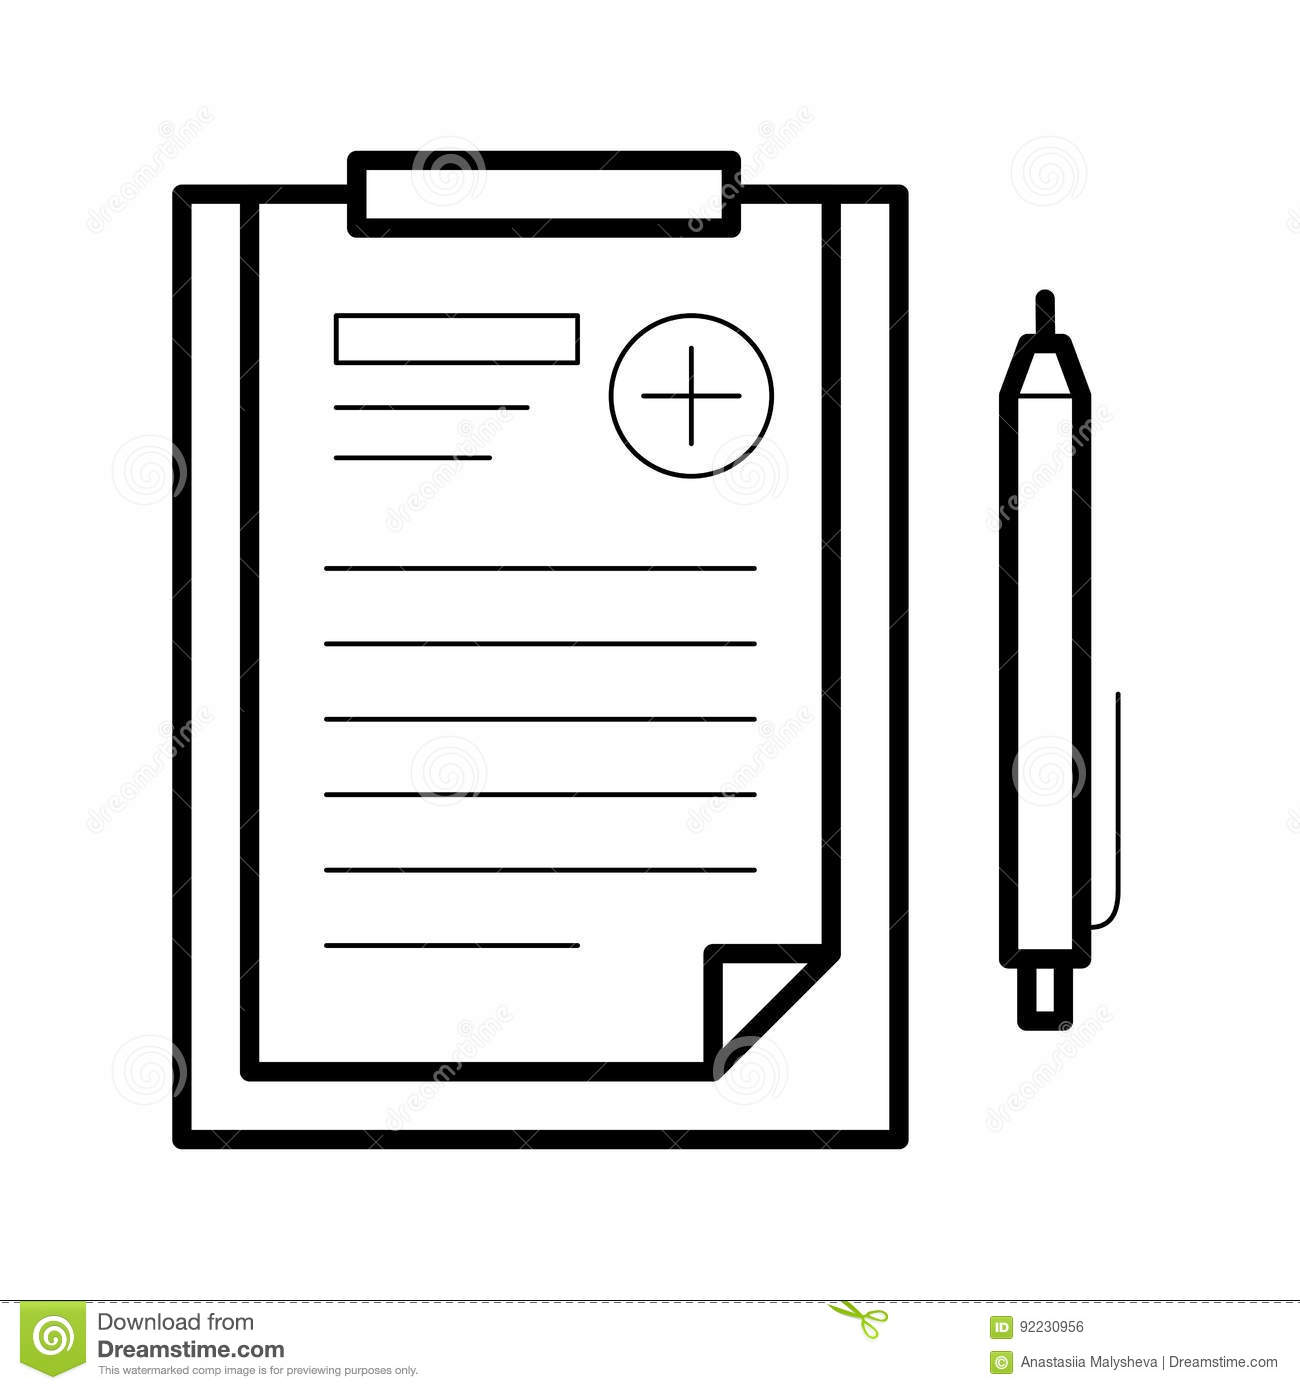 Assignments Sheet Icon, Vector Illustration Stock Vector.